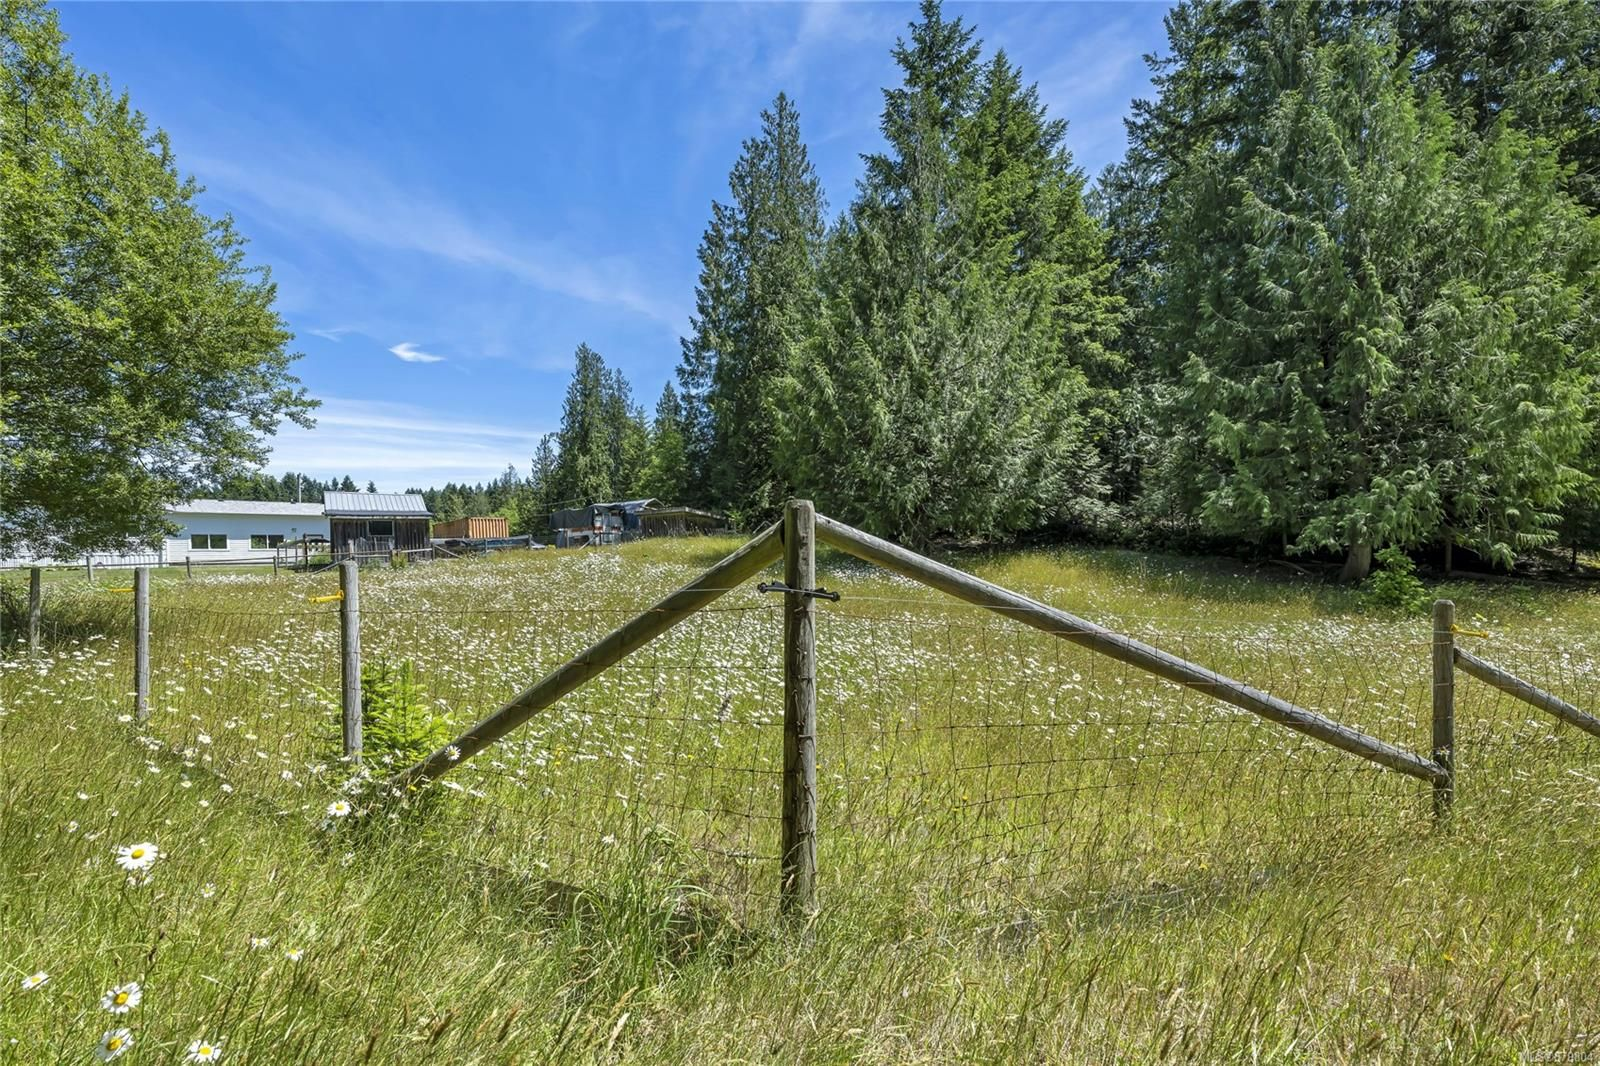 Photo 12: Photos: 3596 Riverside Rd in : ML Cobble Hill Manufactured Home for sale (Malahat & Area)  : MLS®# 879804